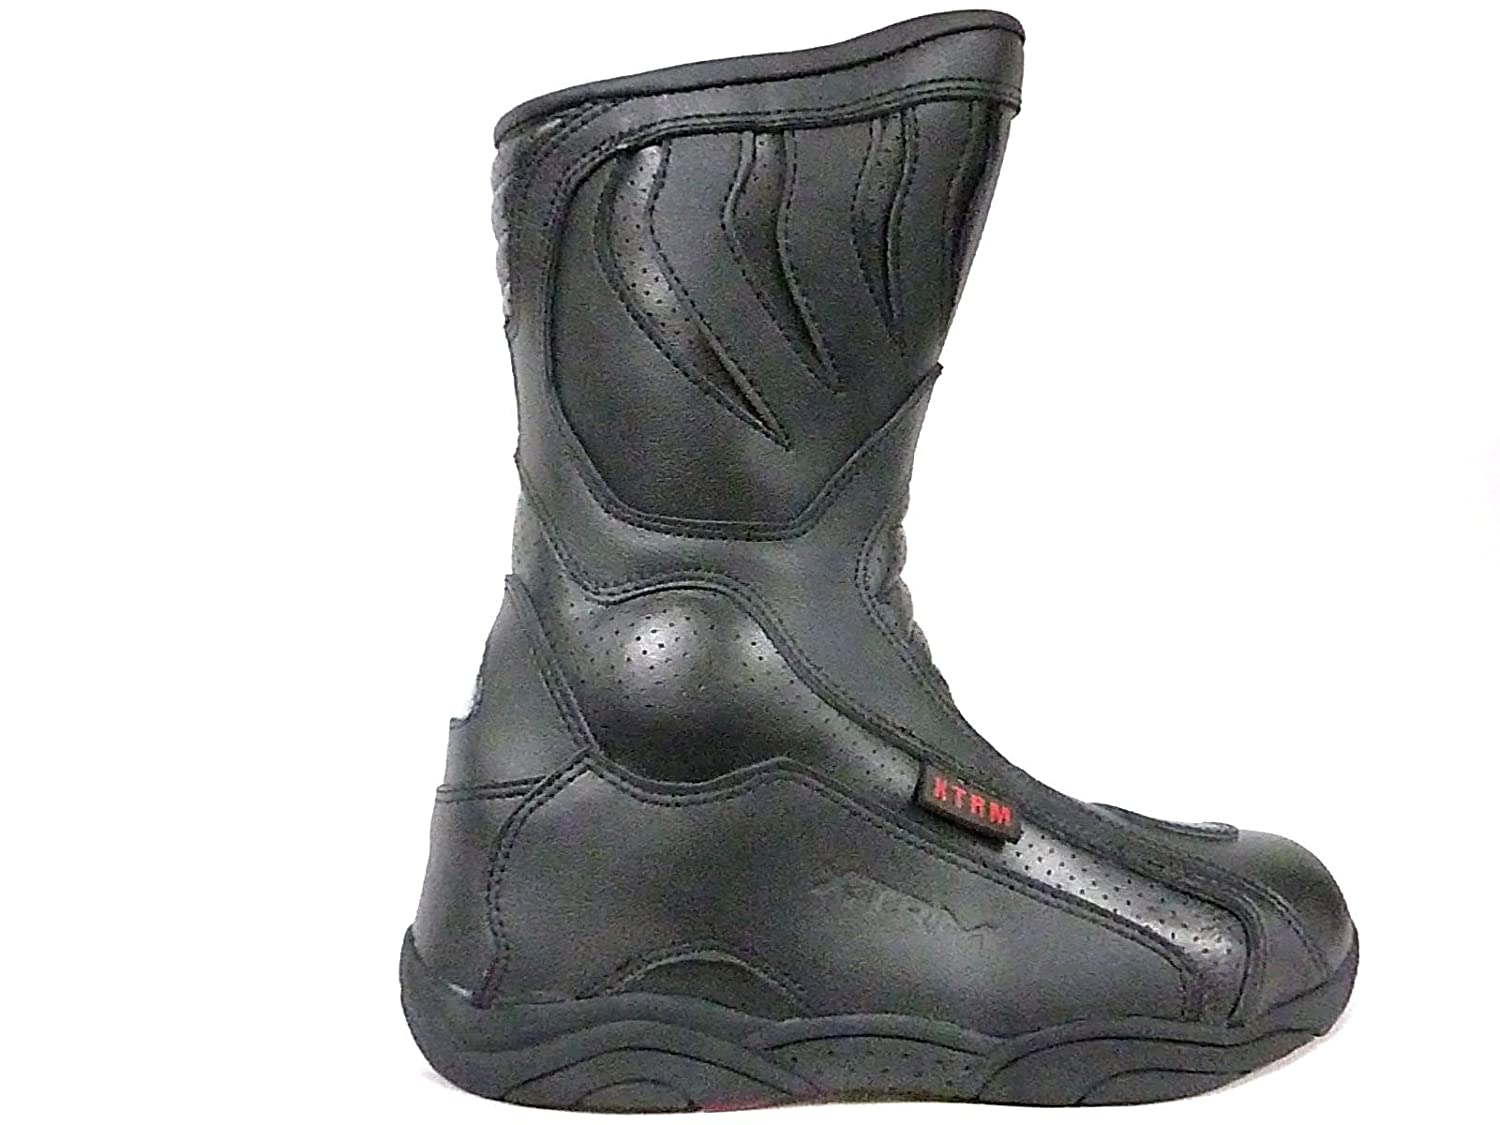 MoTorbike ScooTer XTRM 801 BlacK BooT MoTorcycle HeavY-Duty TouRinG URban Racing SporTs BooTs